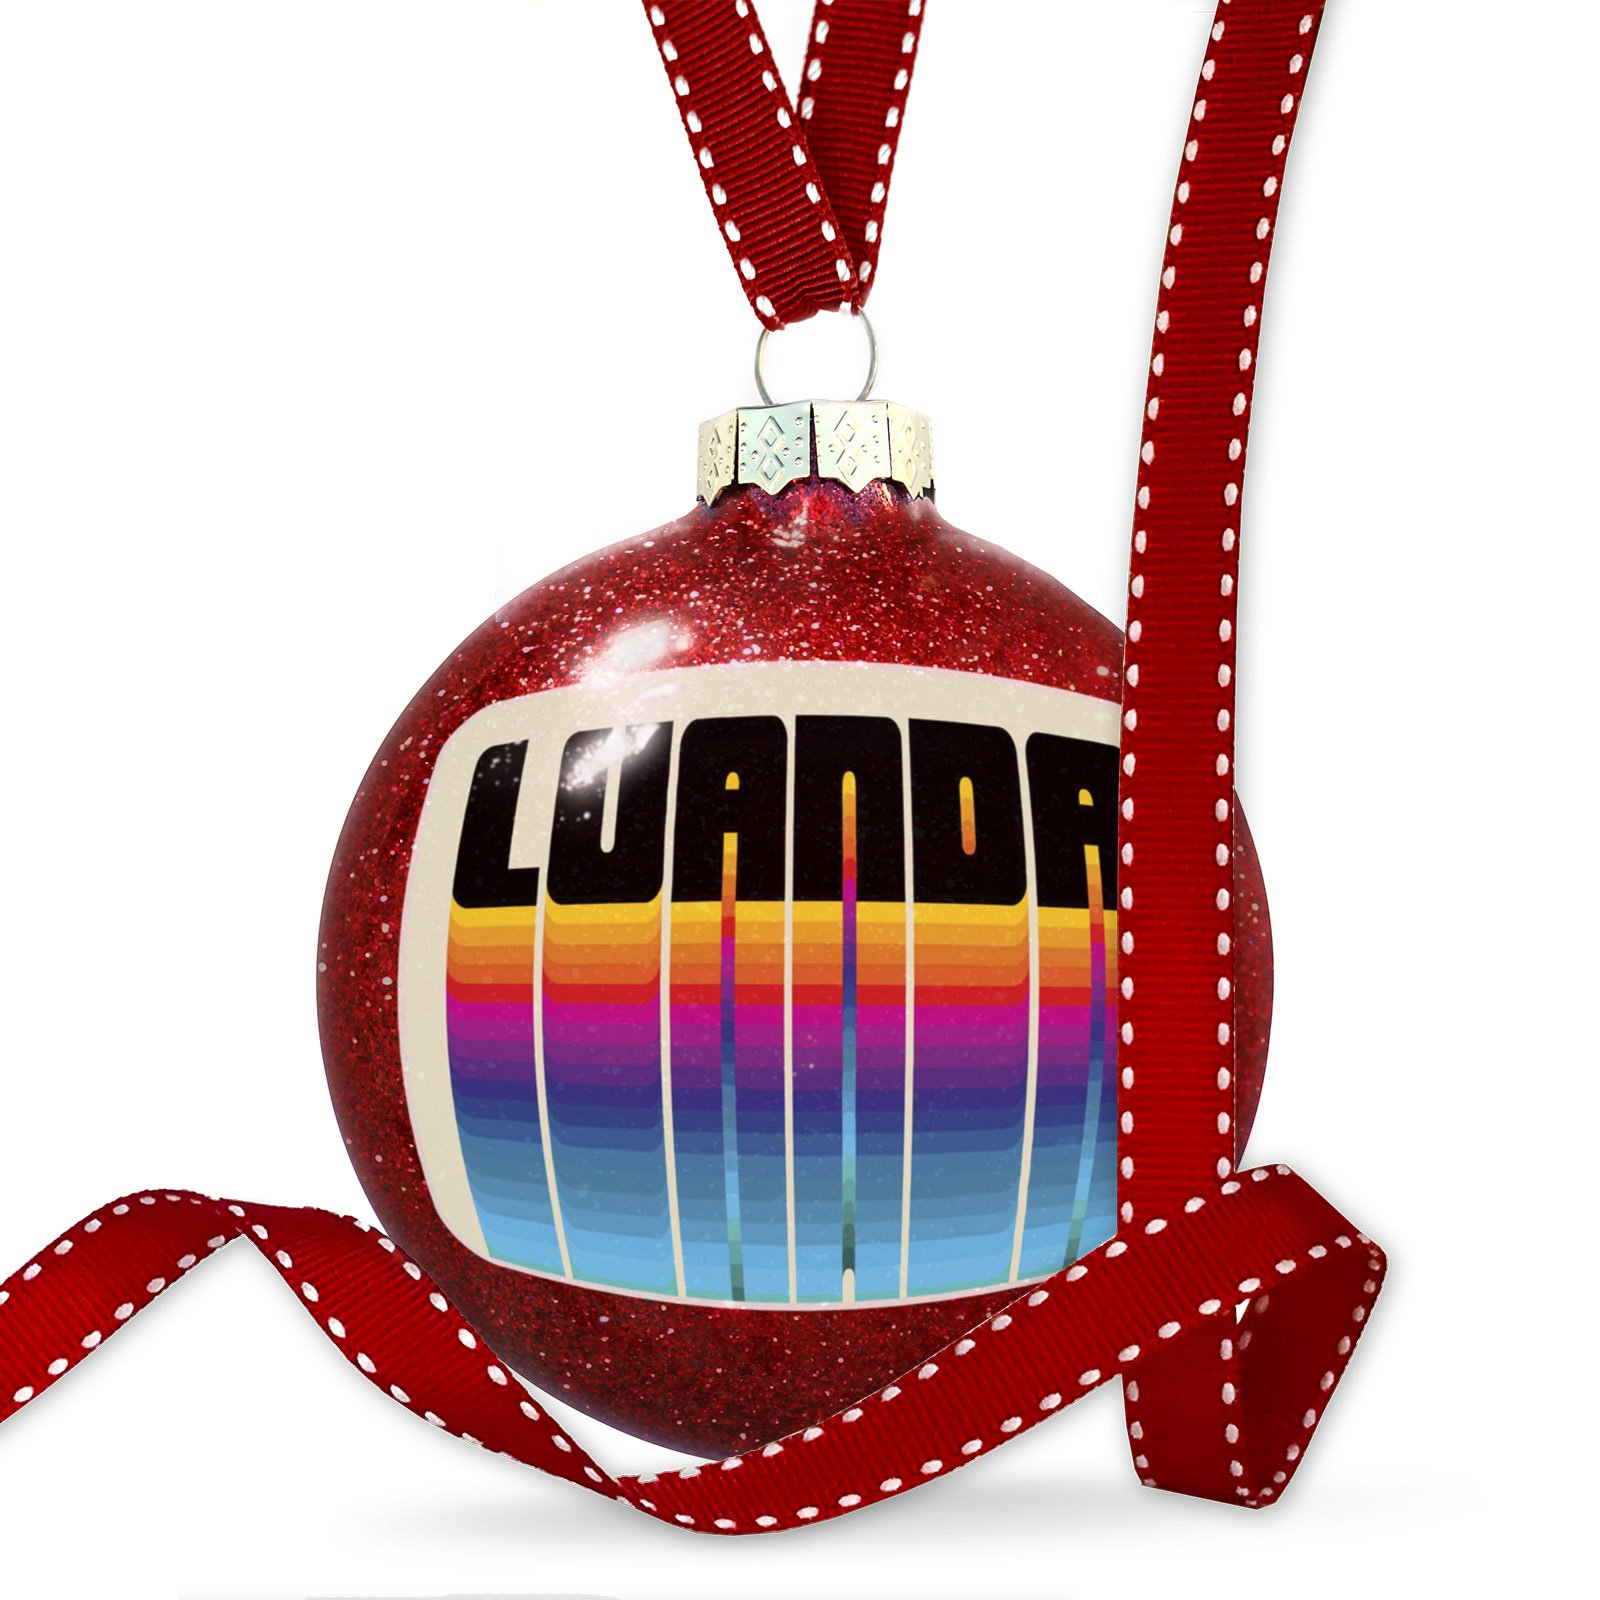 Christmas Decoration Retro Cites States Countries Luanda Ornament